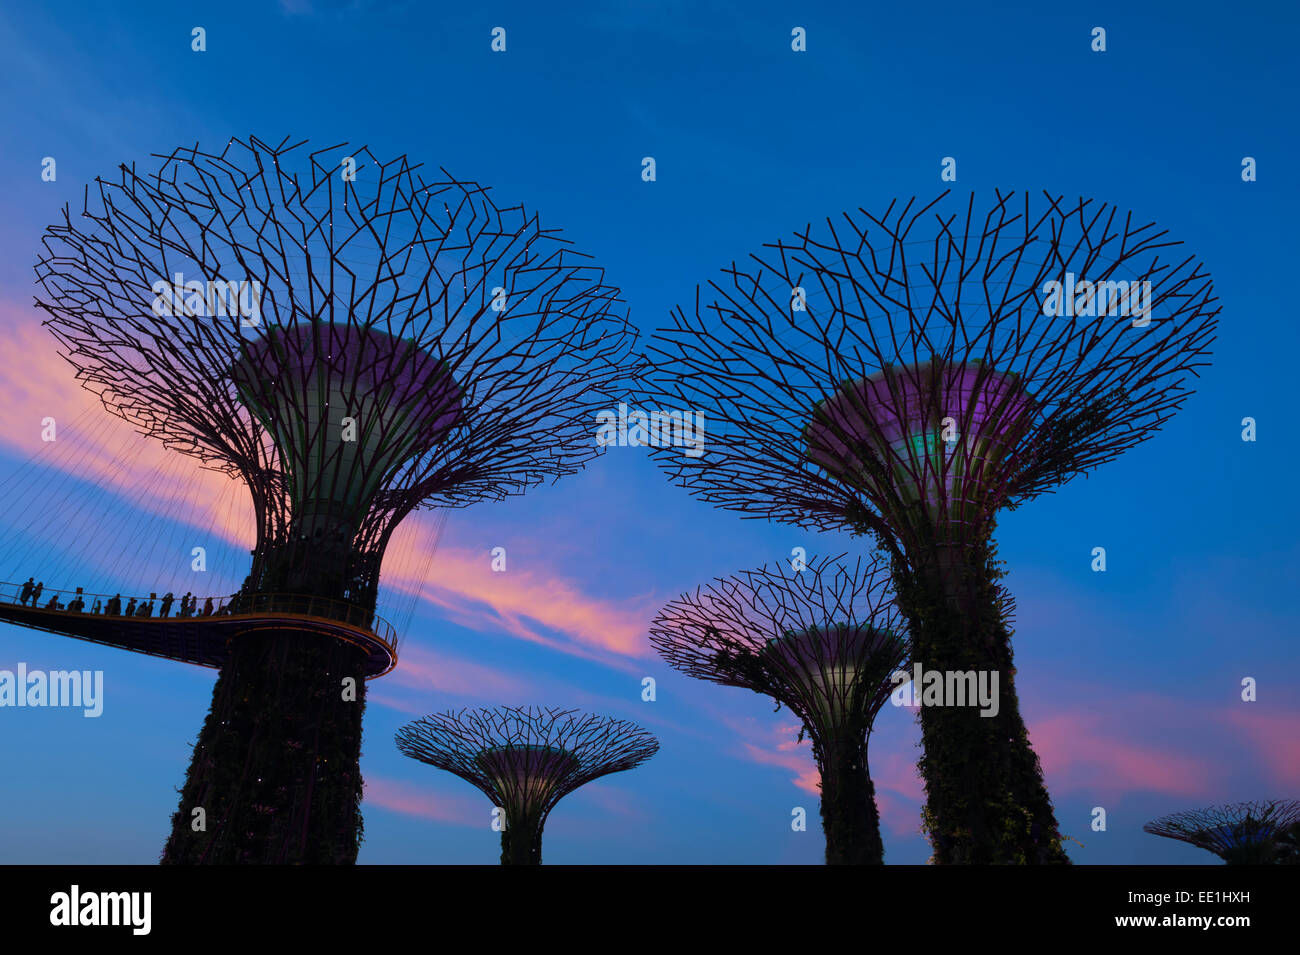 Gardens by the Bay at night, Singapore, Southeast Asia, Asia - Stock Image